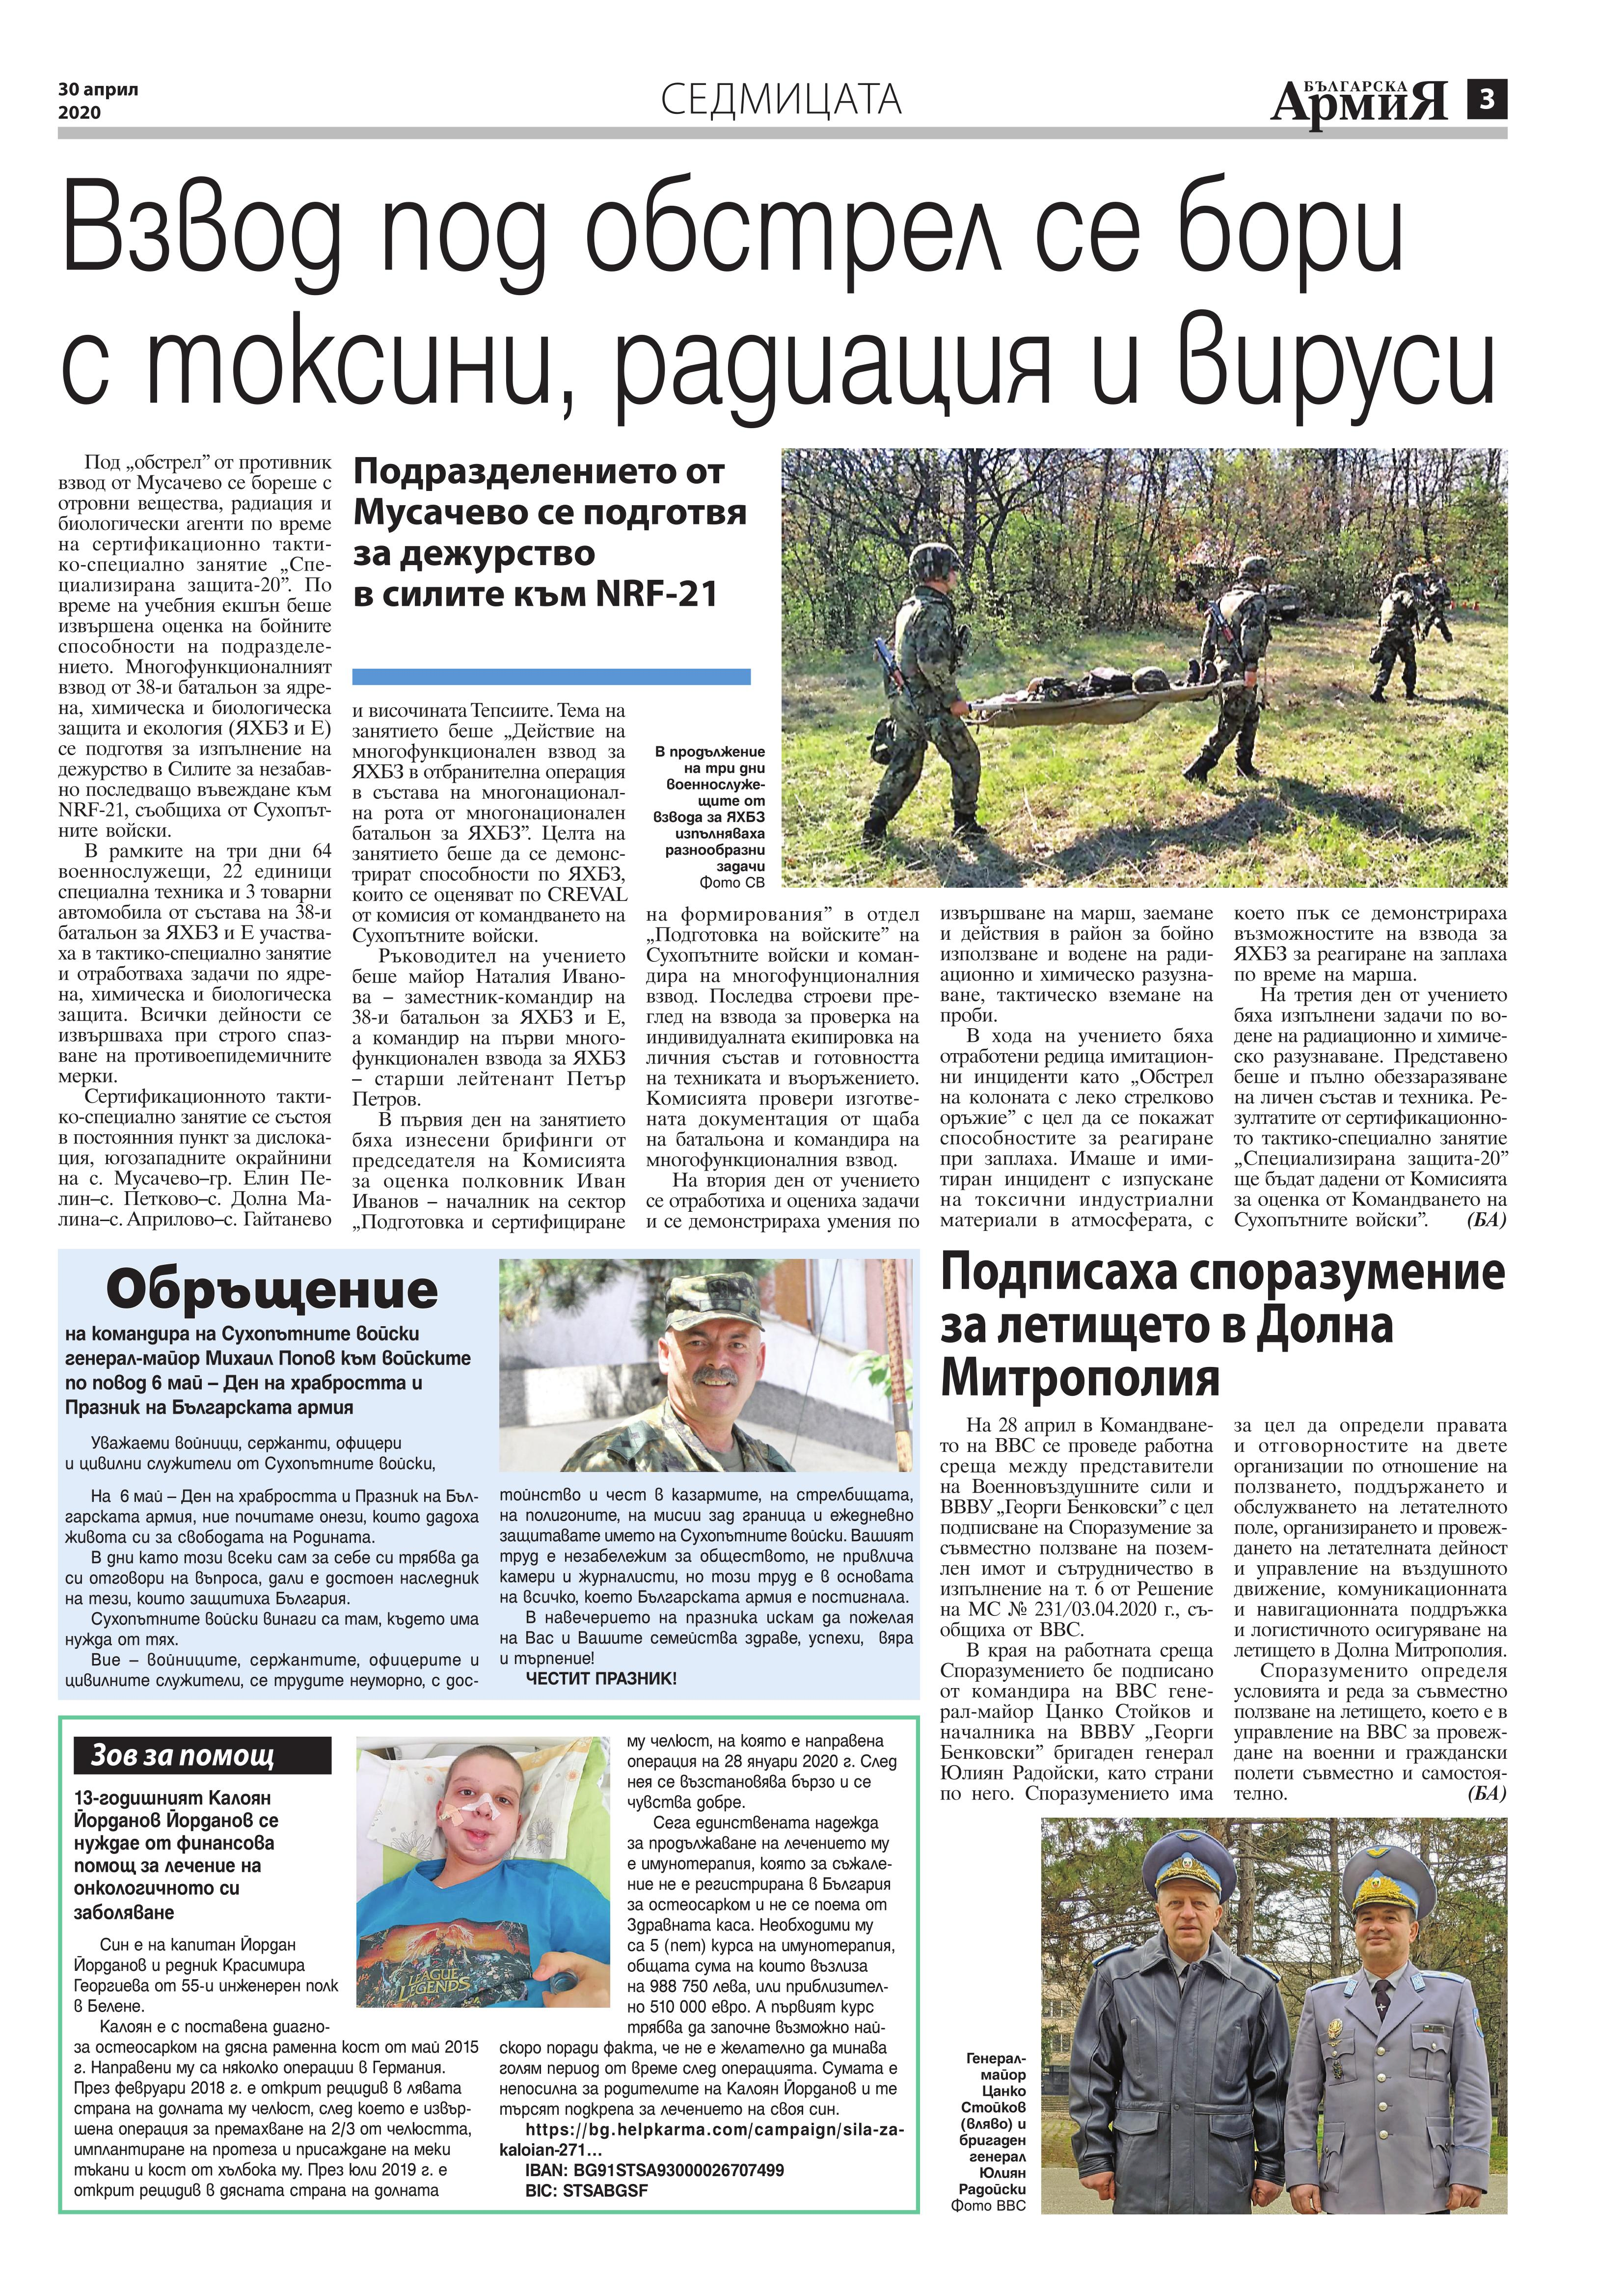 https://armymedia.bg/wp-content/uploads/2015/06/03.page1_-134.jpg